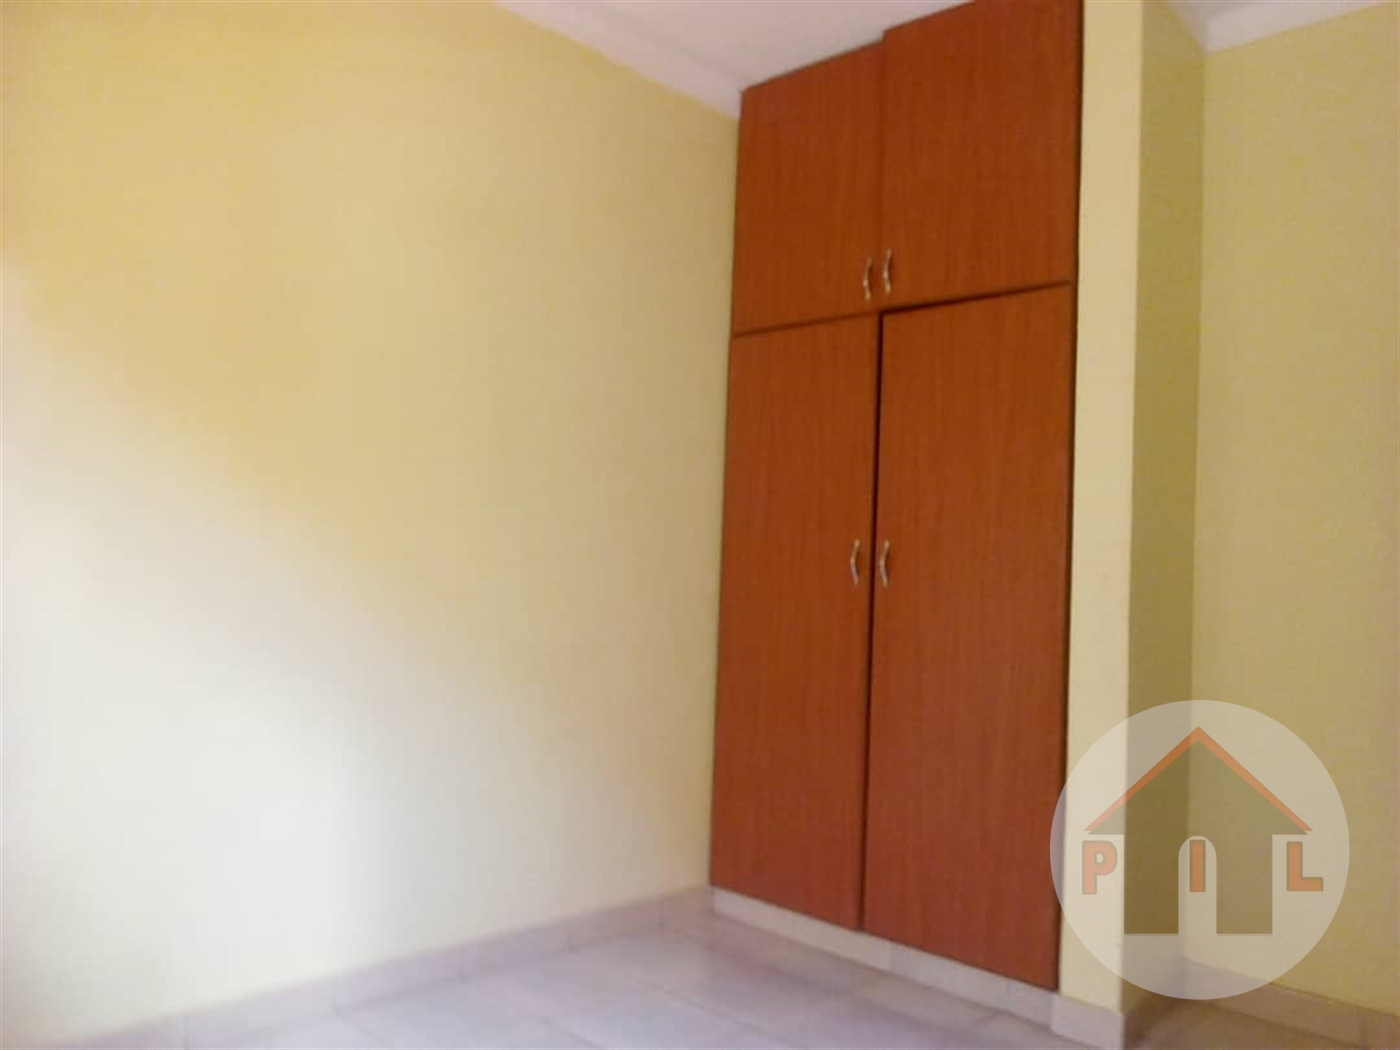 Rental units for sale in Kira Wakiso